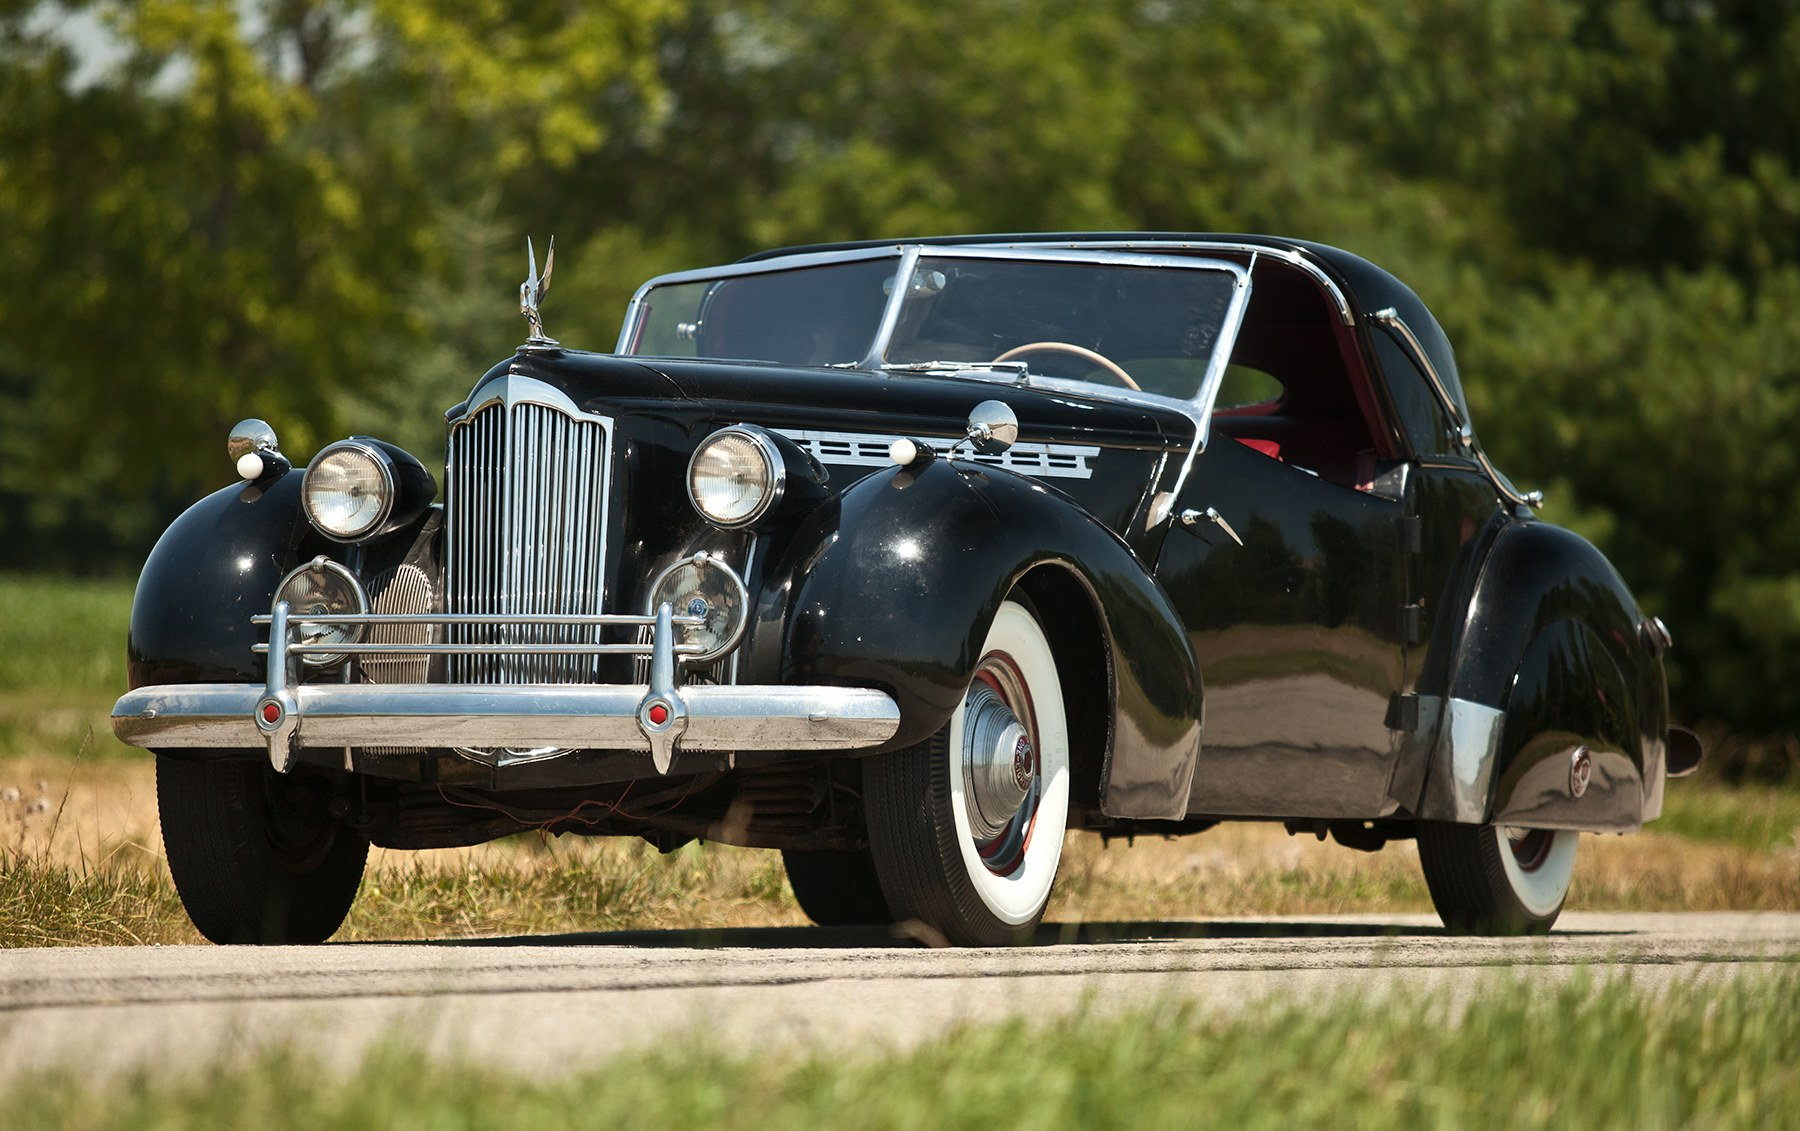 1940 Packard Model 1806 Towne Coupe